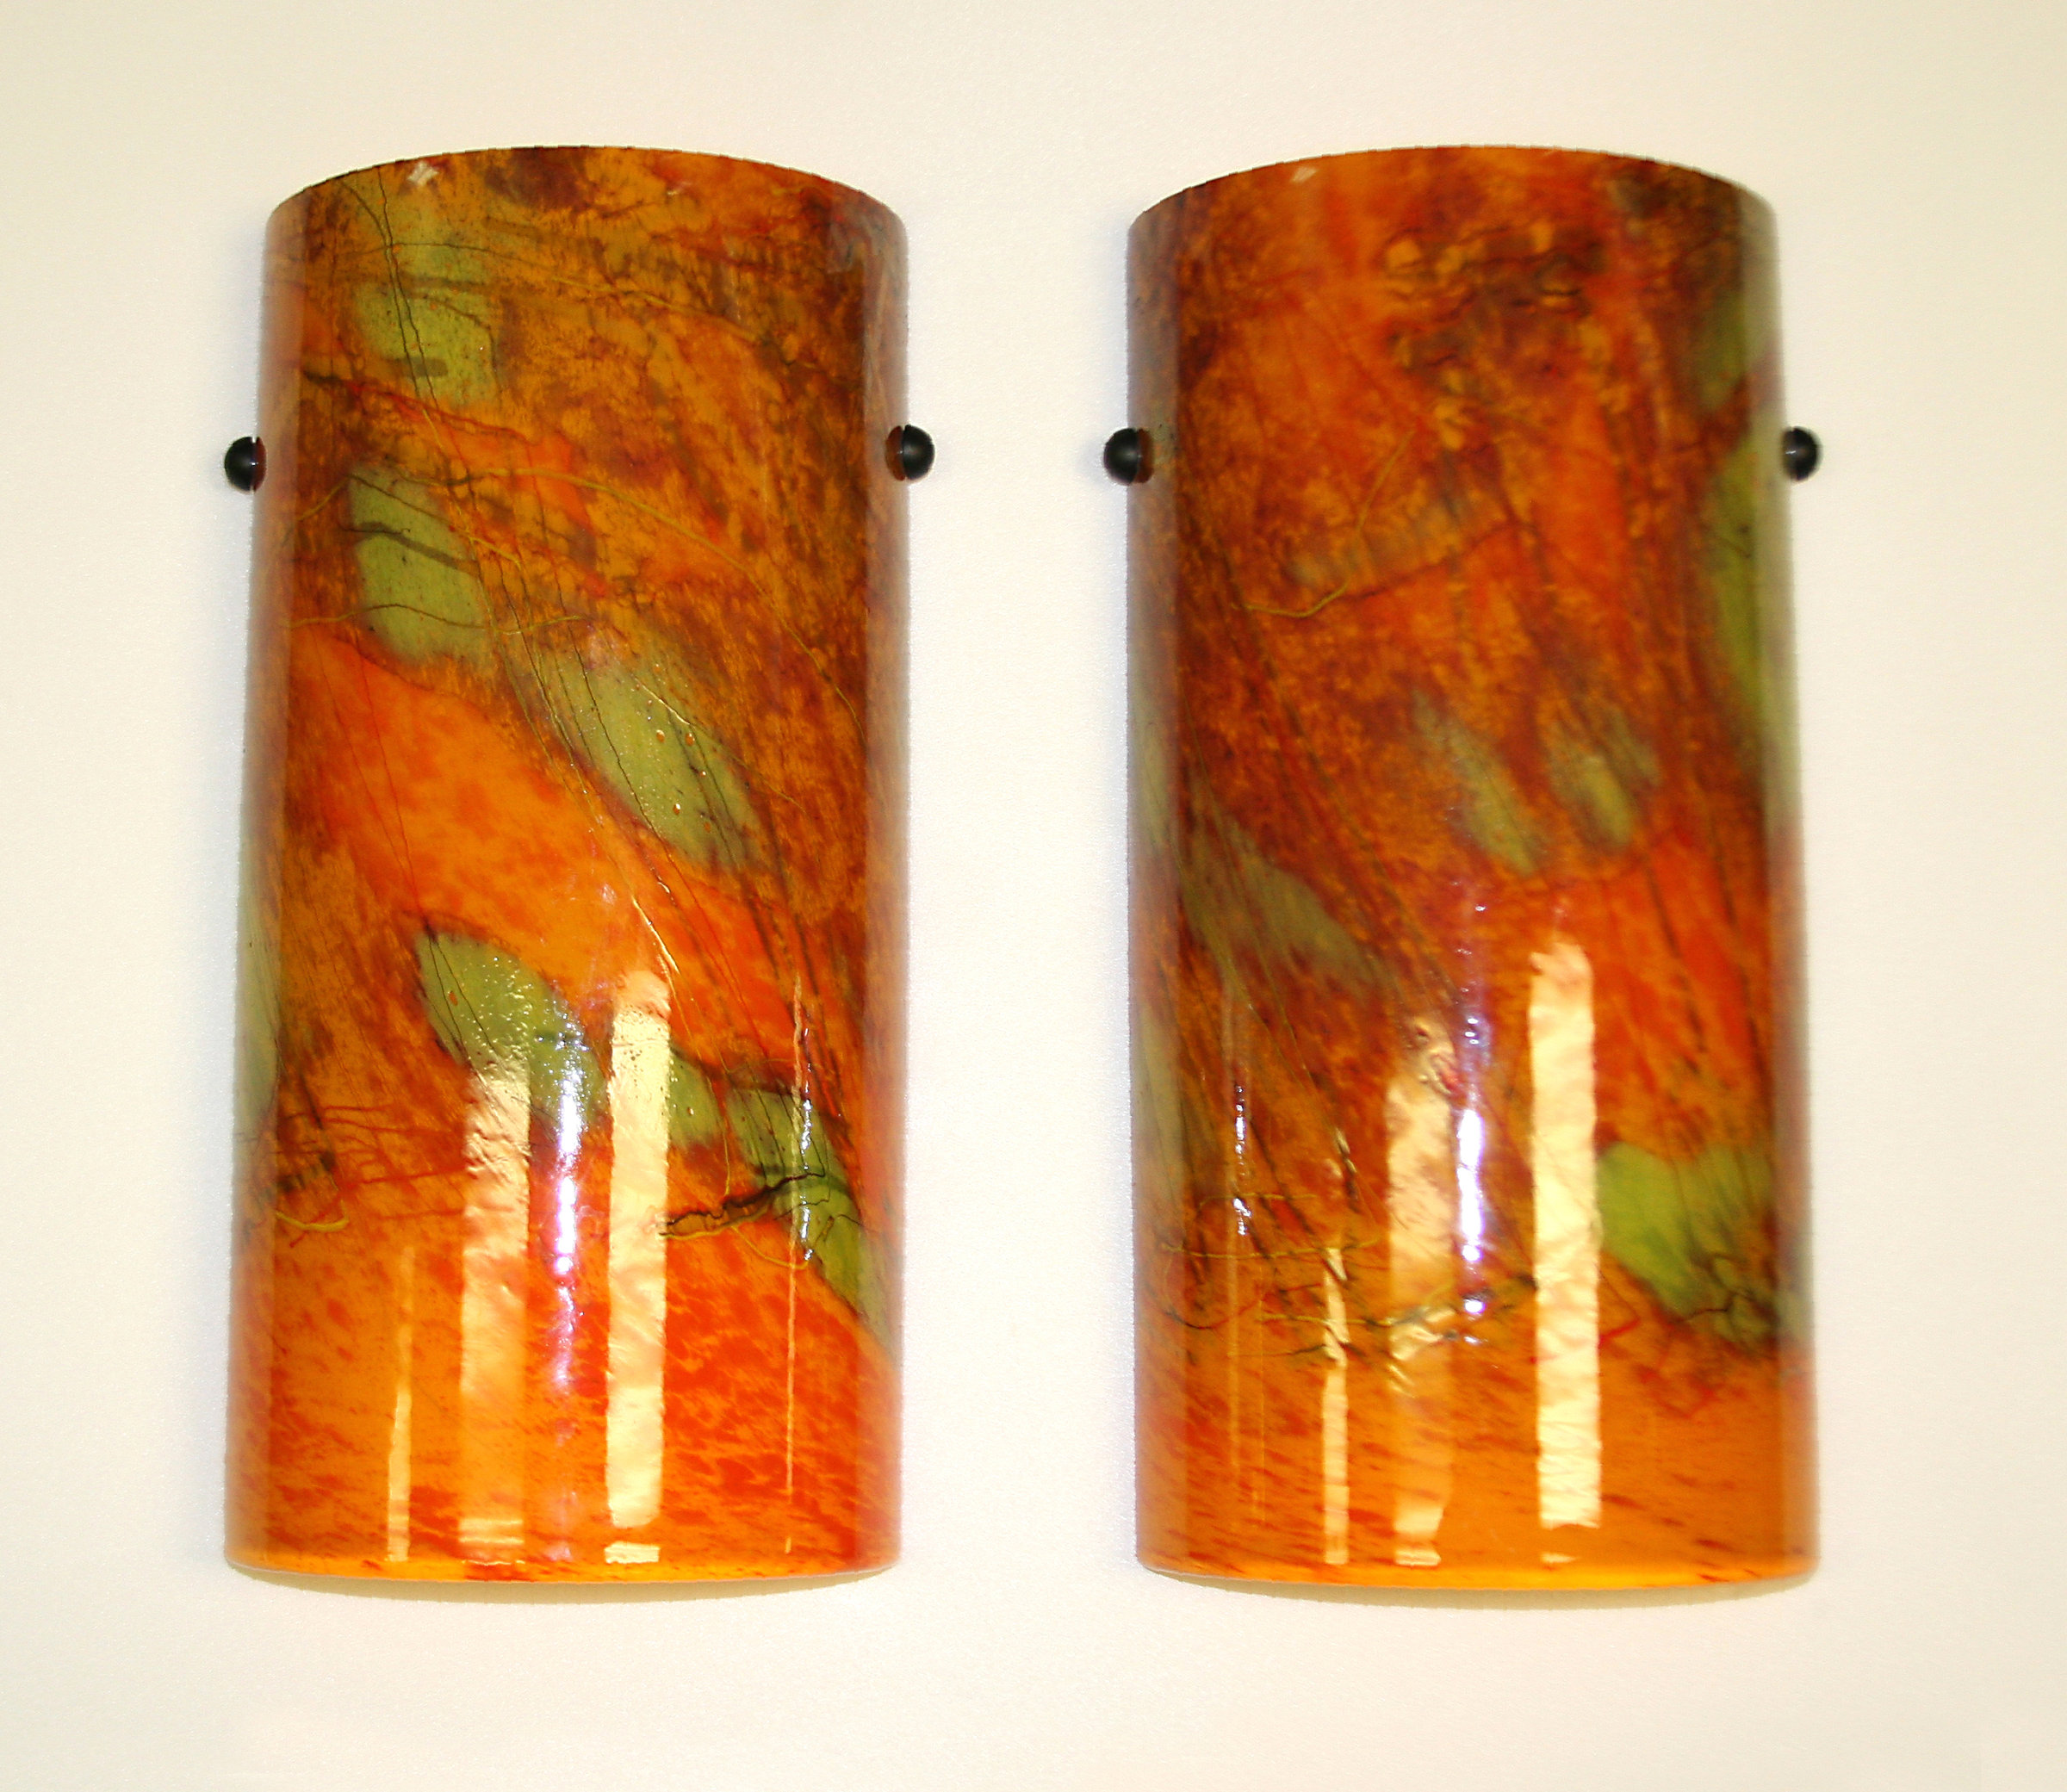 Art Glass Wall Sconce Tuscany Sconce By Joel And Candace Bless Art Glass Sconce